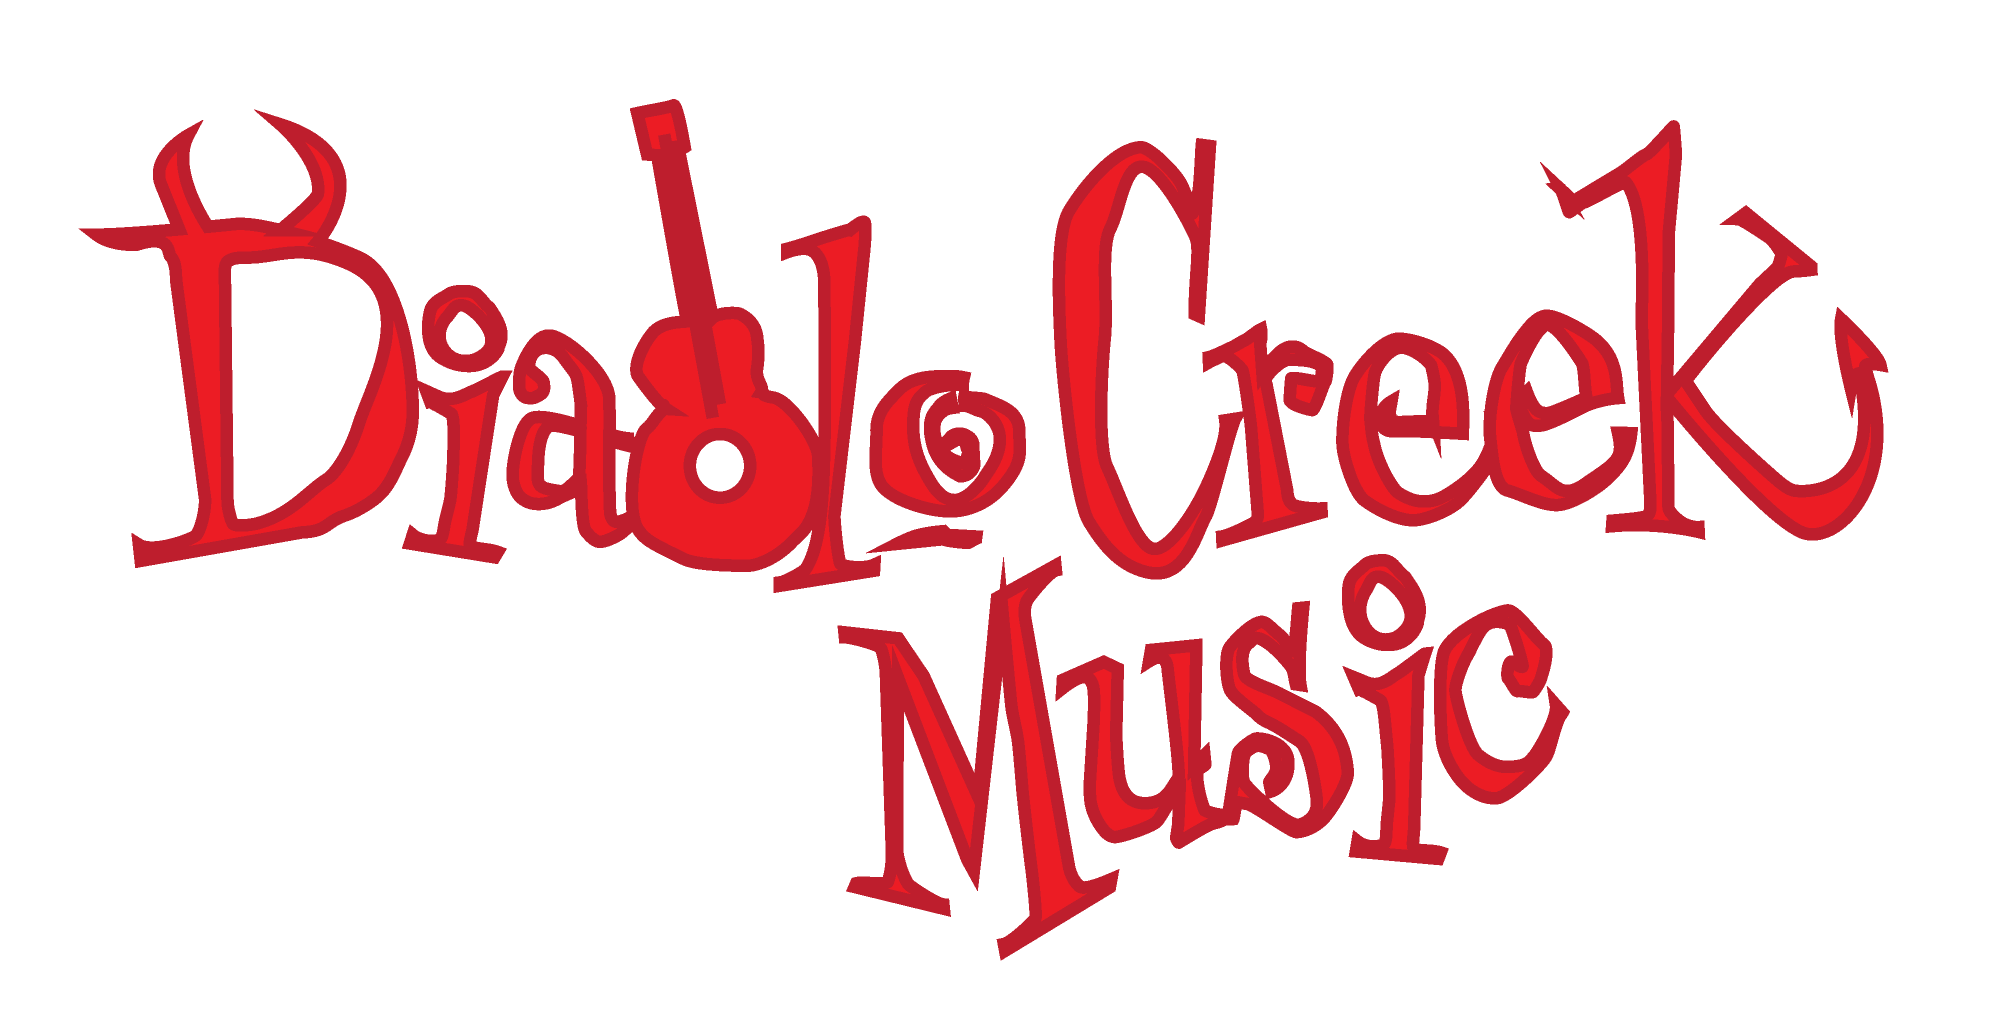 Diablo-Creek-Music-STACKED